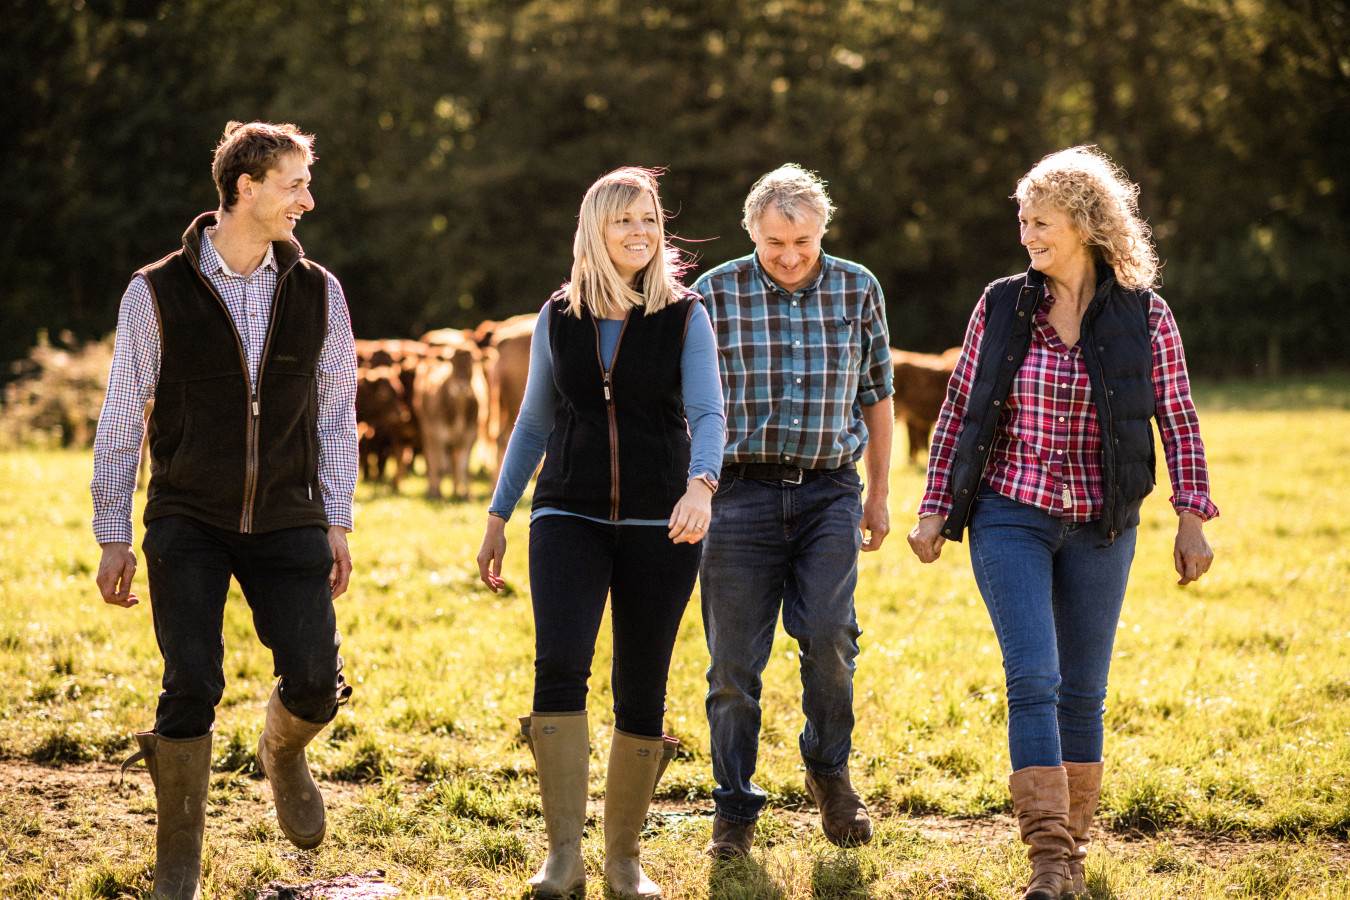 Mounce Family walking and laughing together through field on their farm